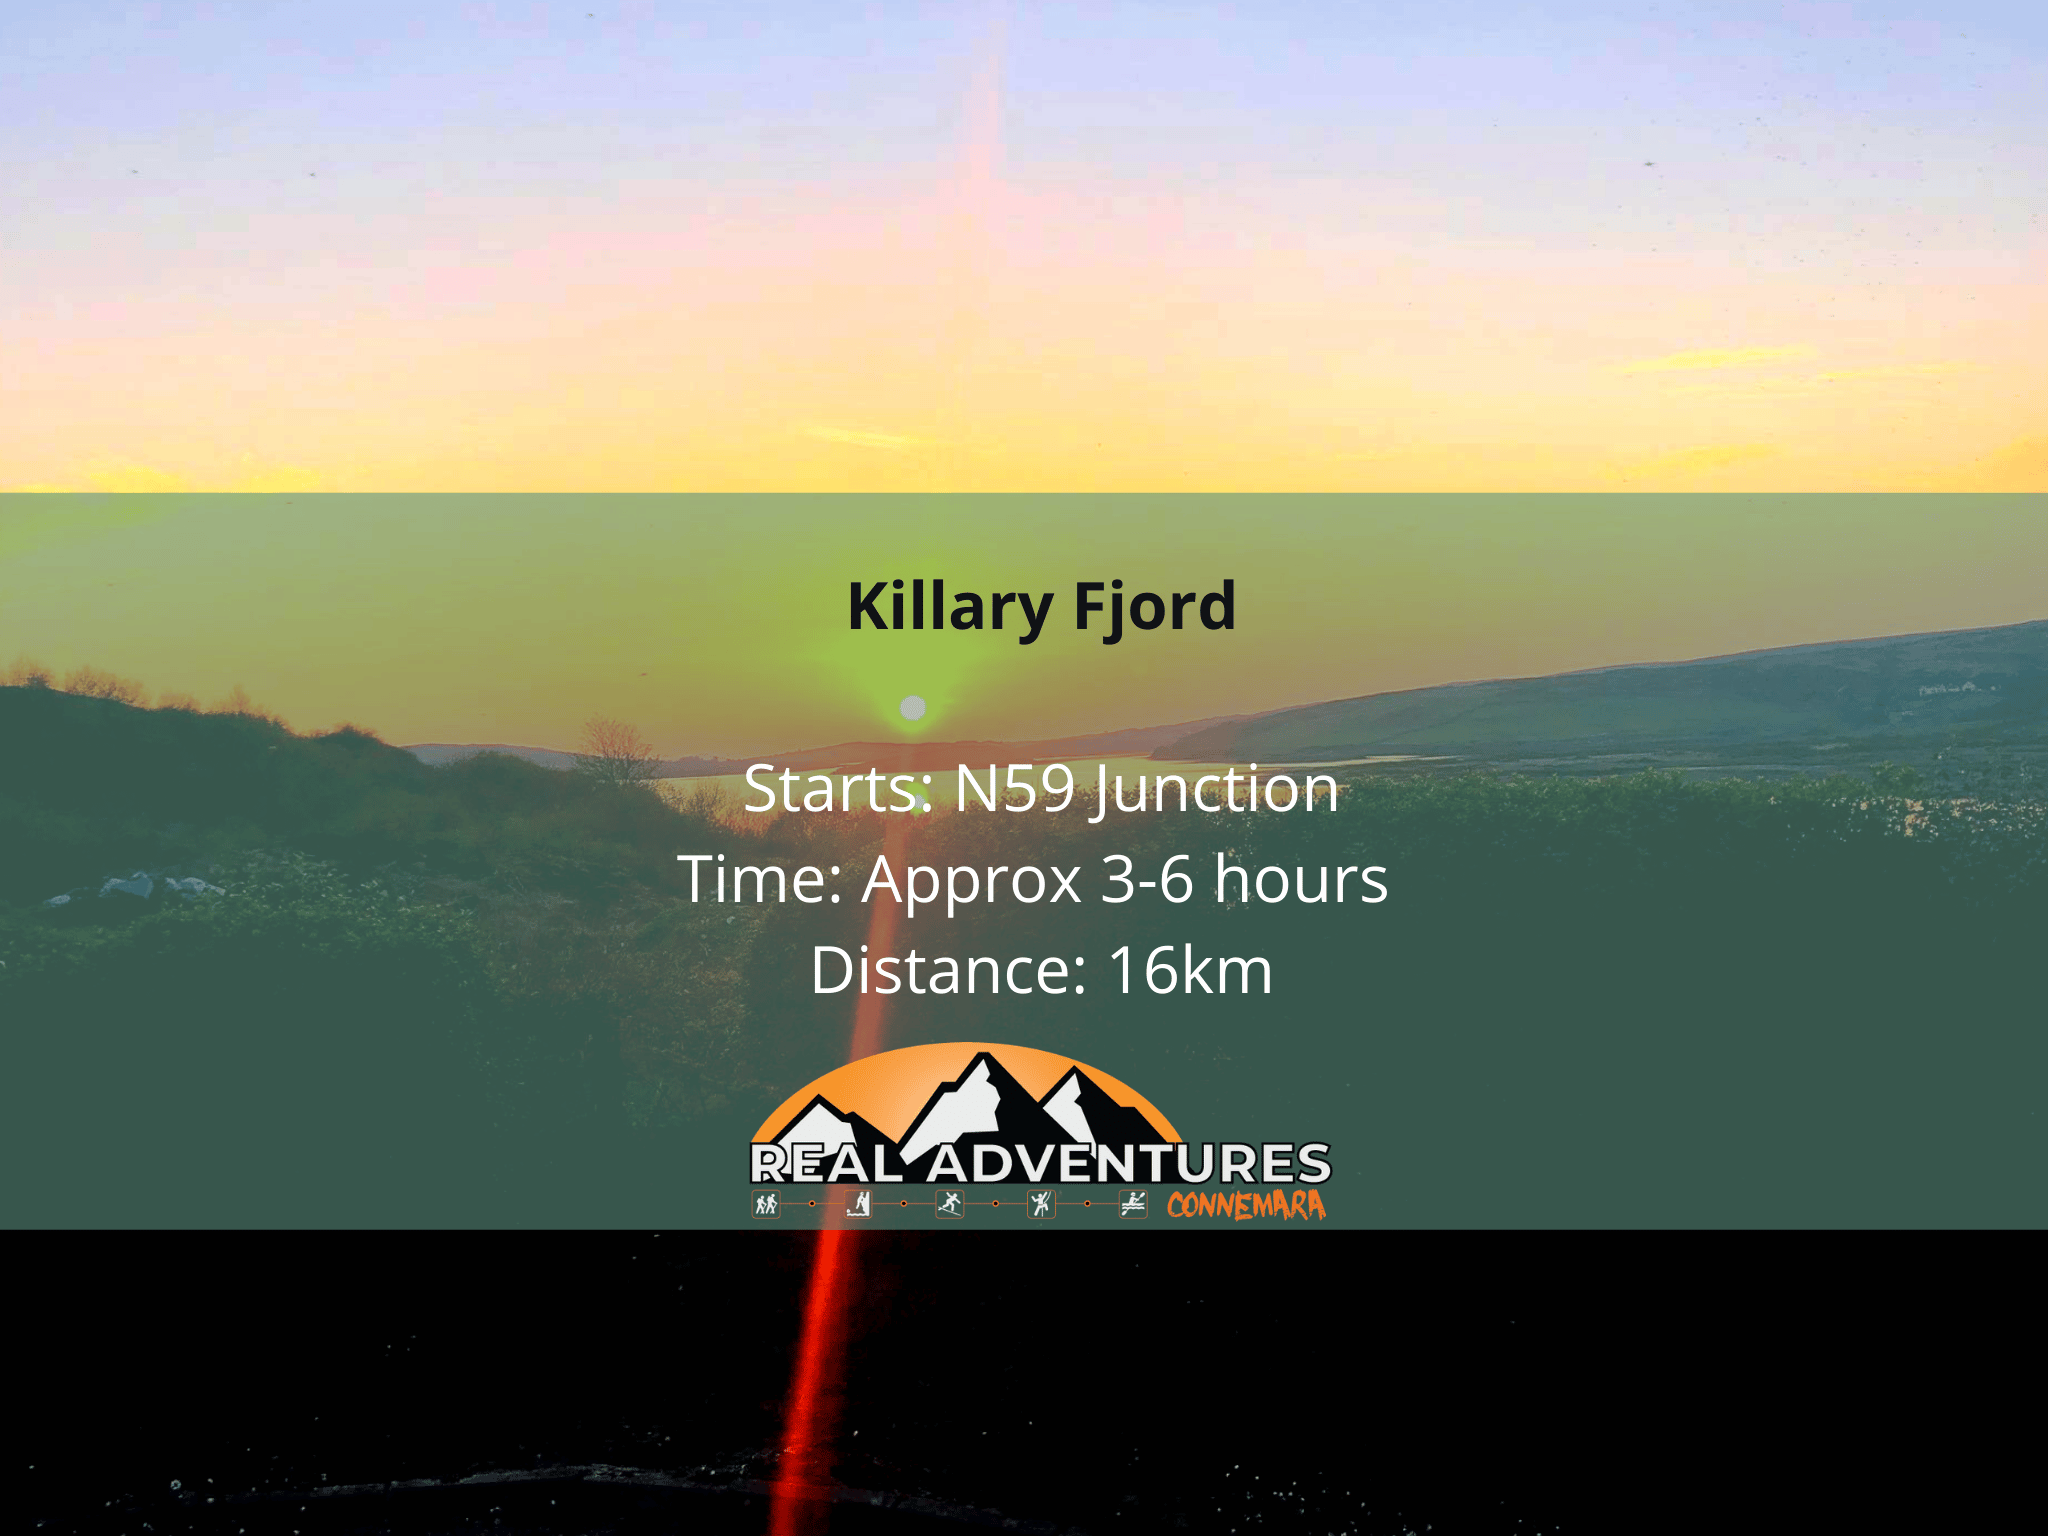 sunset image with killary fjord walk details in text